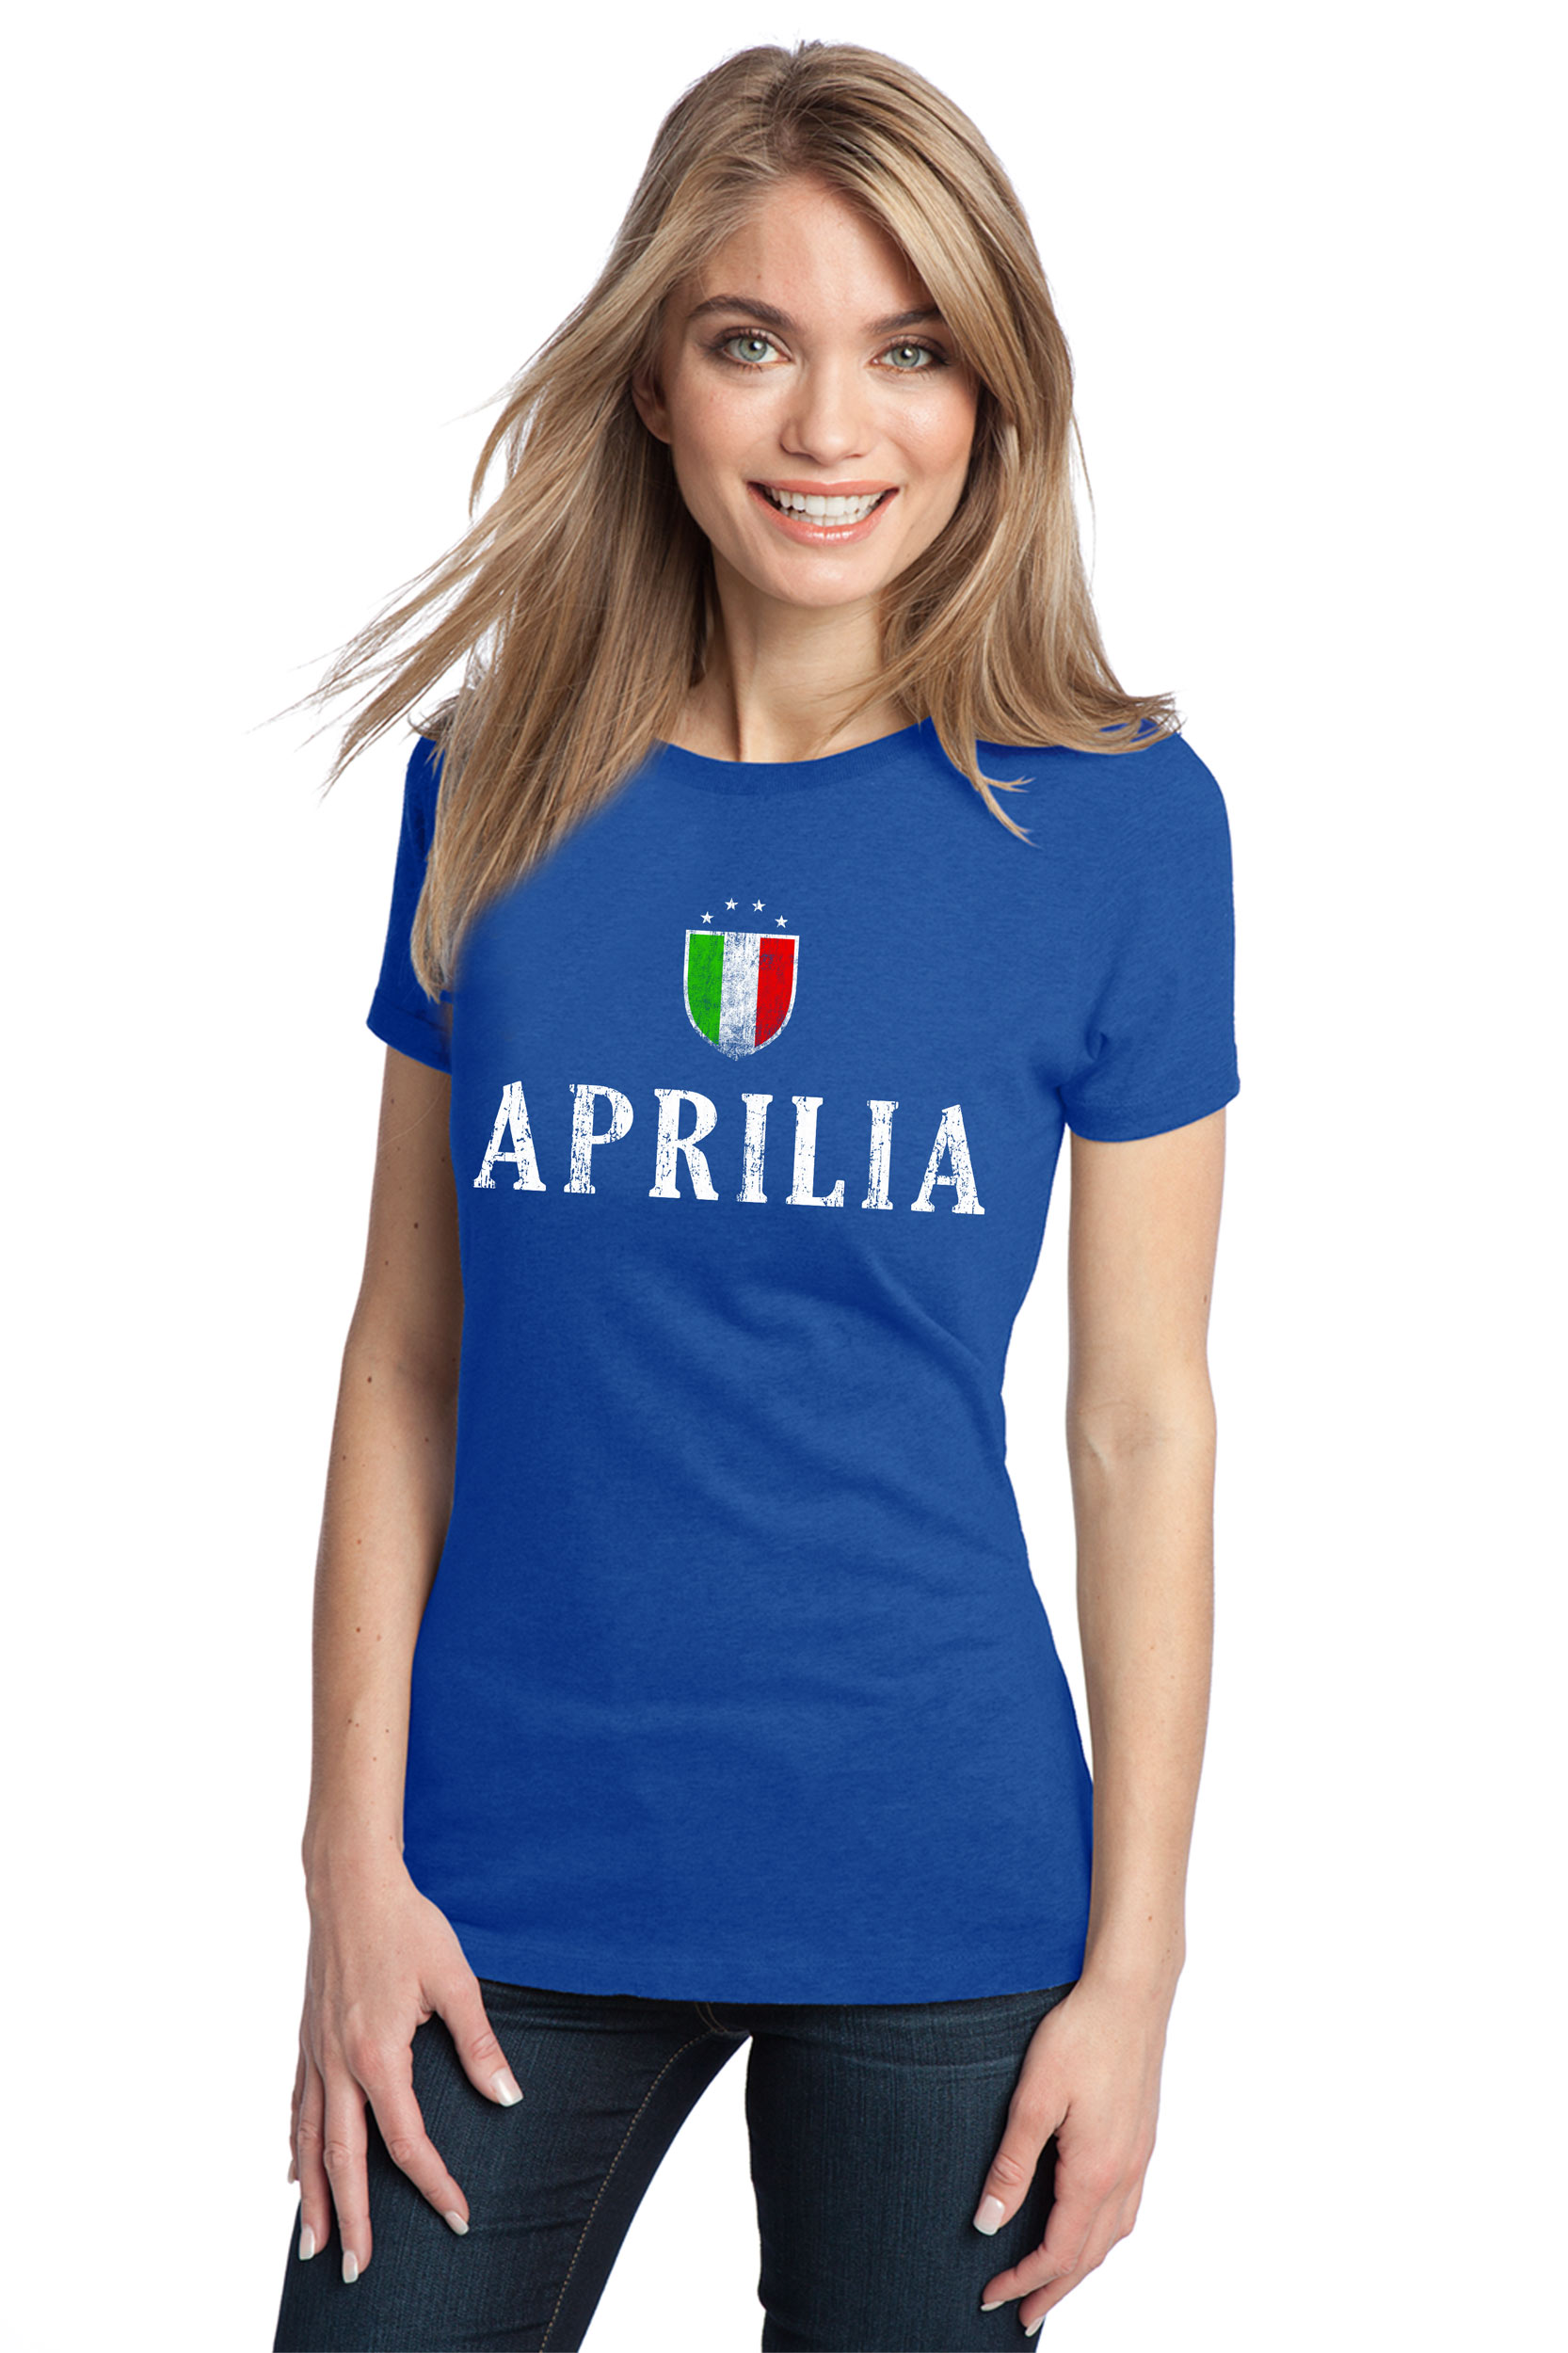 Aprilia Italy  City pictures : APRILIA ITALY Adult Ladies Vintage Look T shirt Lazio Italian City Tee